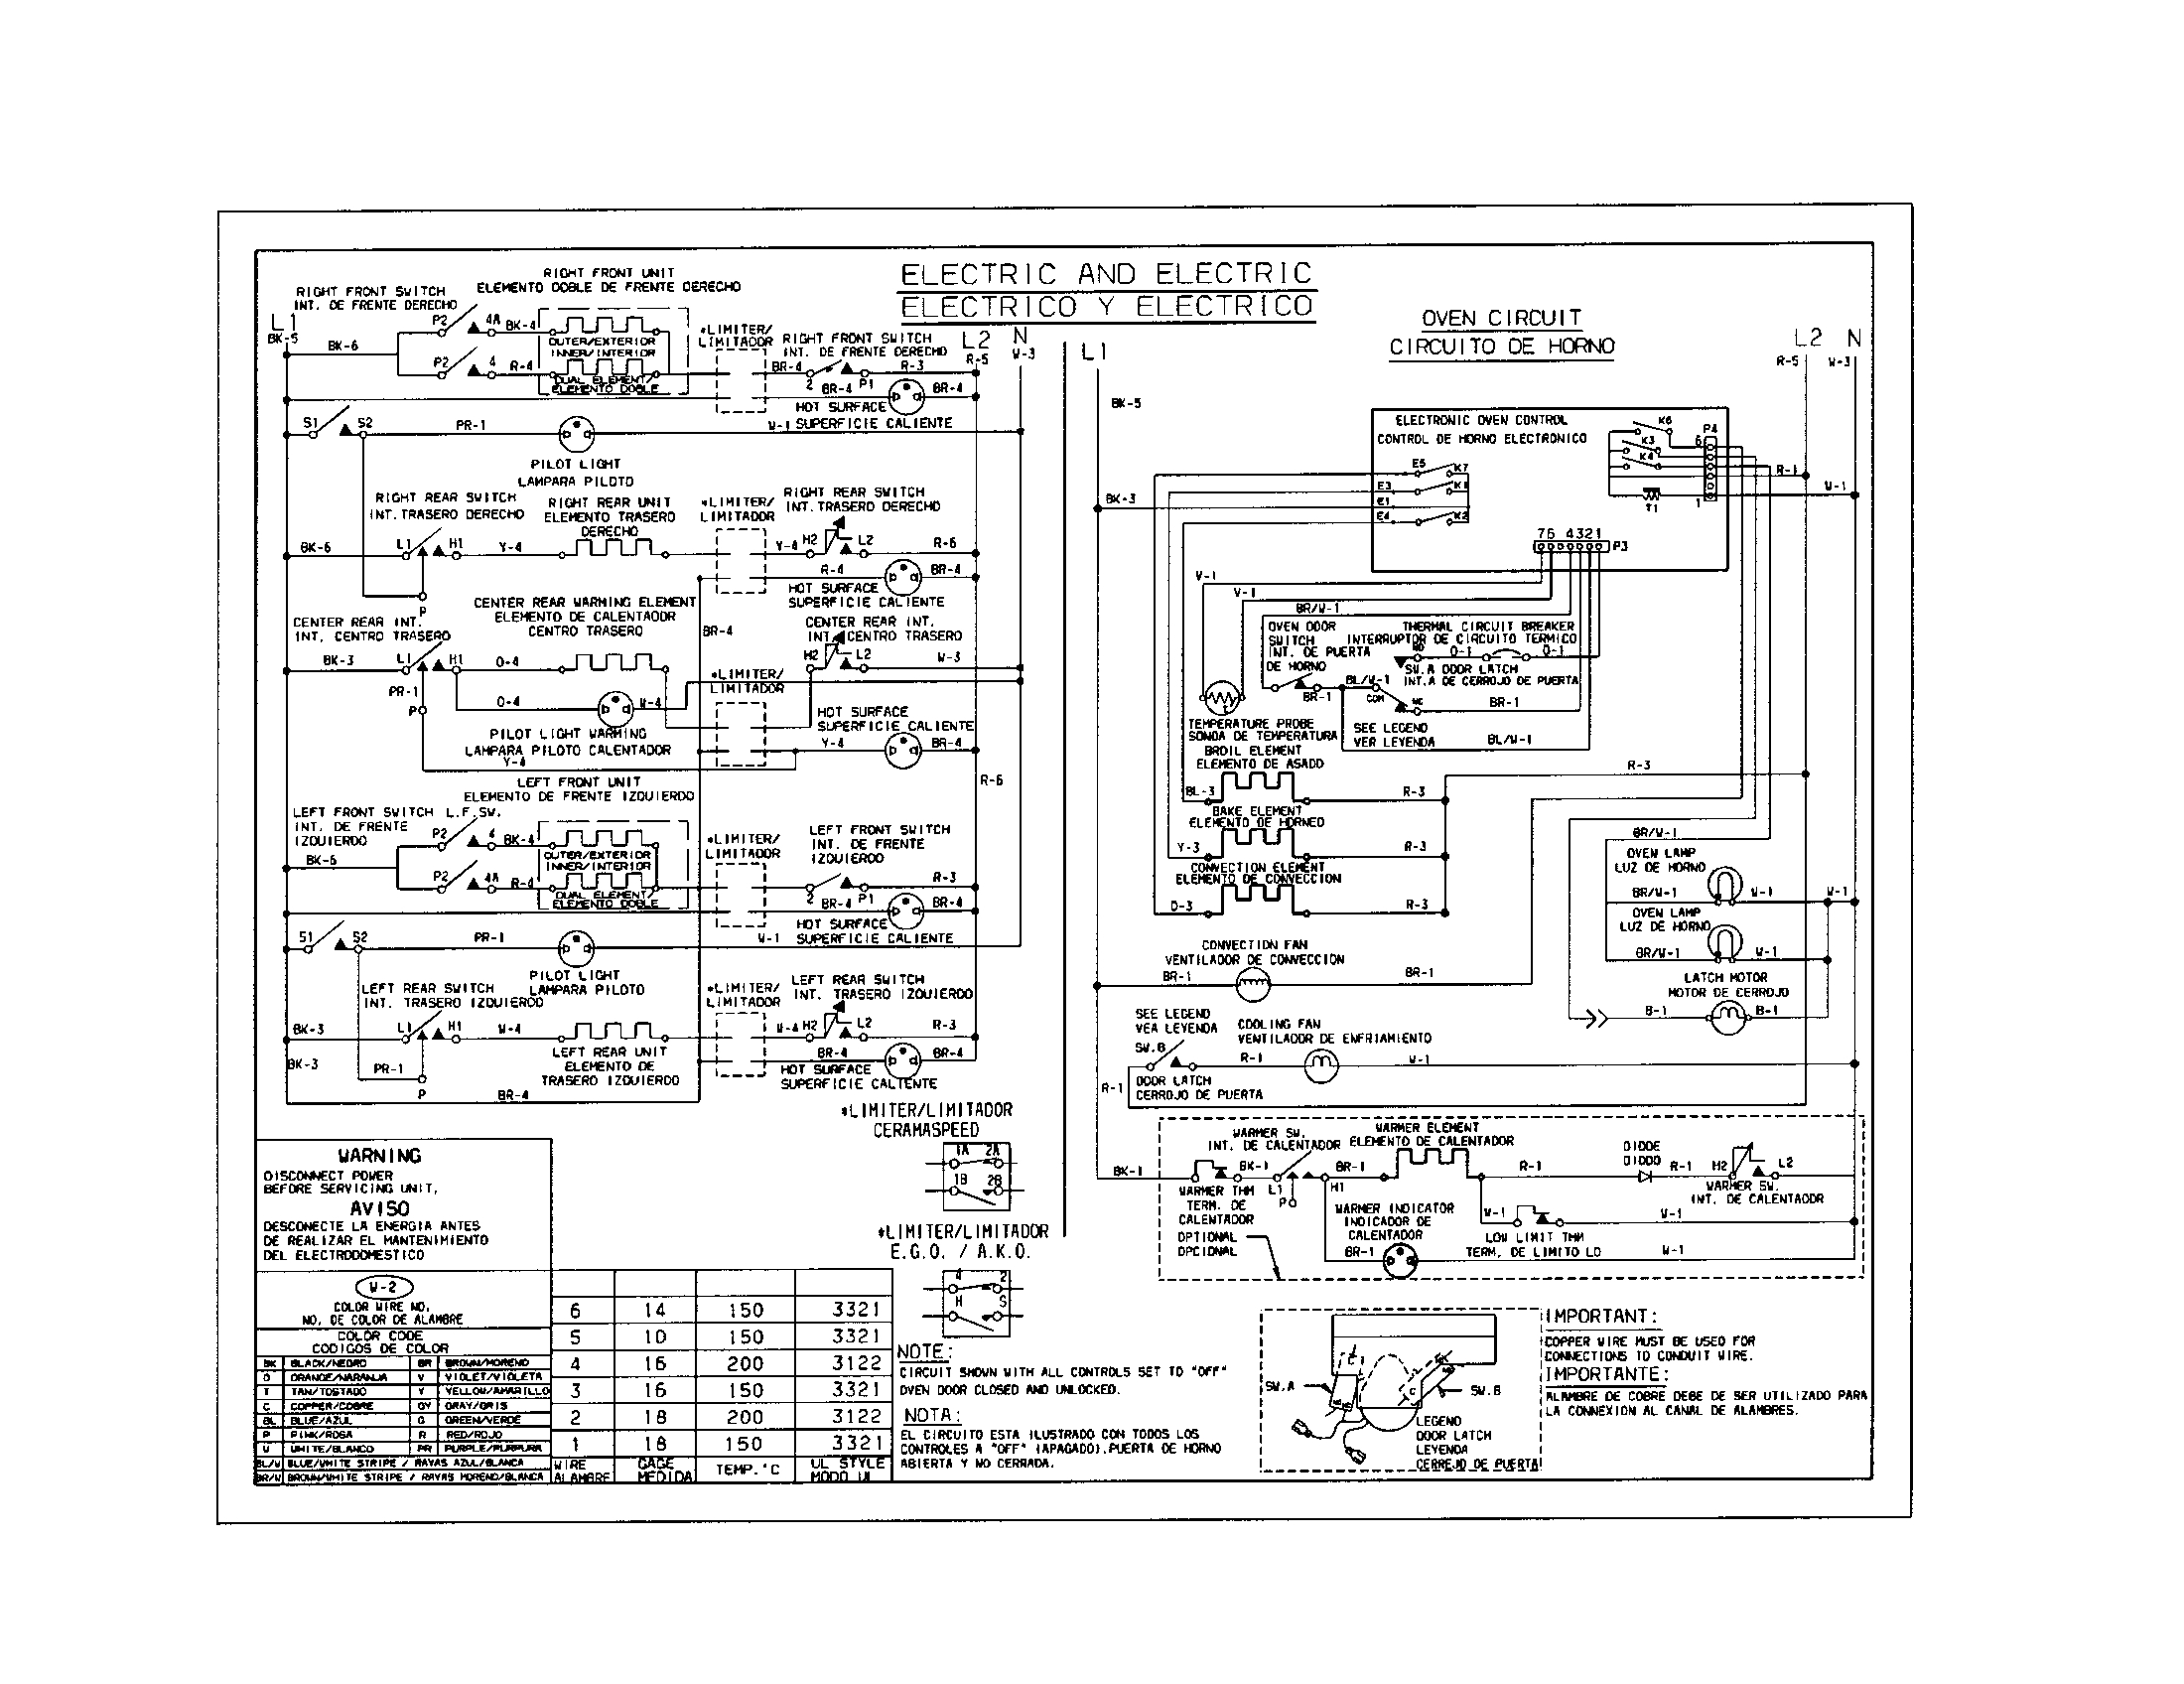 sears dryer wiring diagram wiring diagram mix sears kenmore dryer wiring diagram schematic diagram databaseelectrical schematic